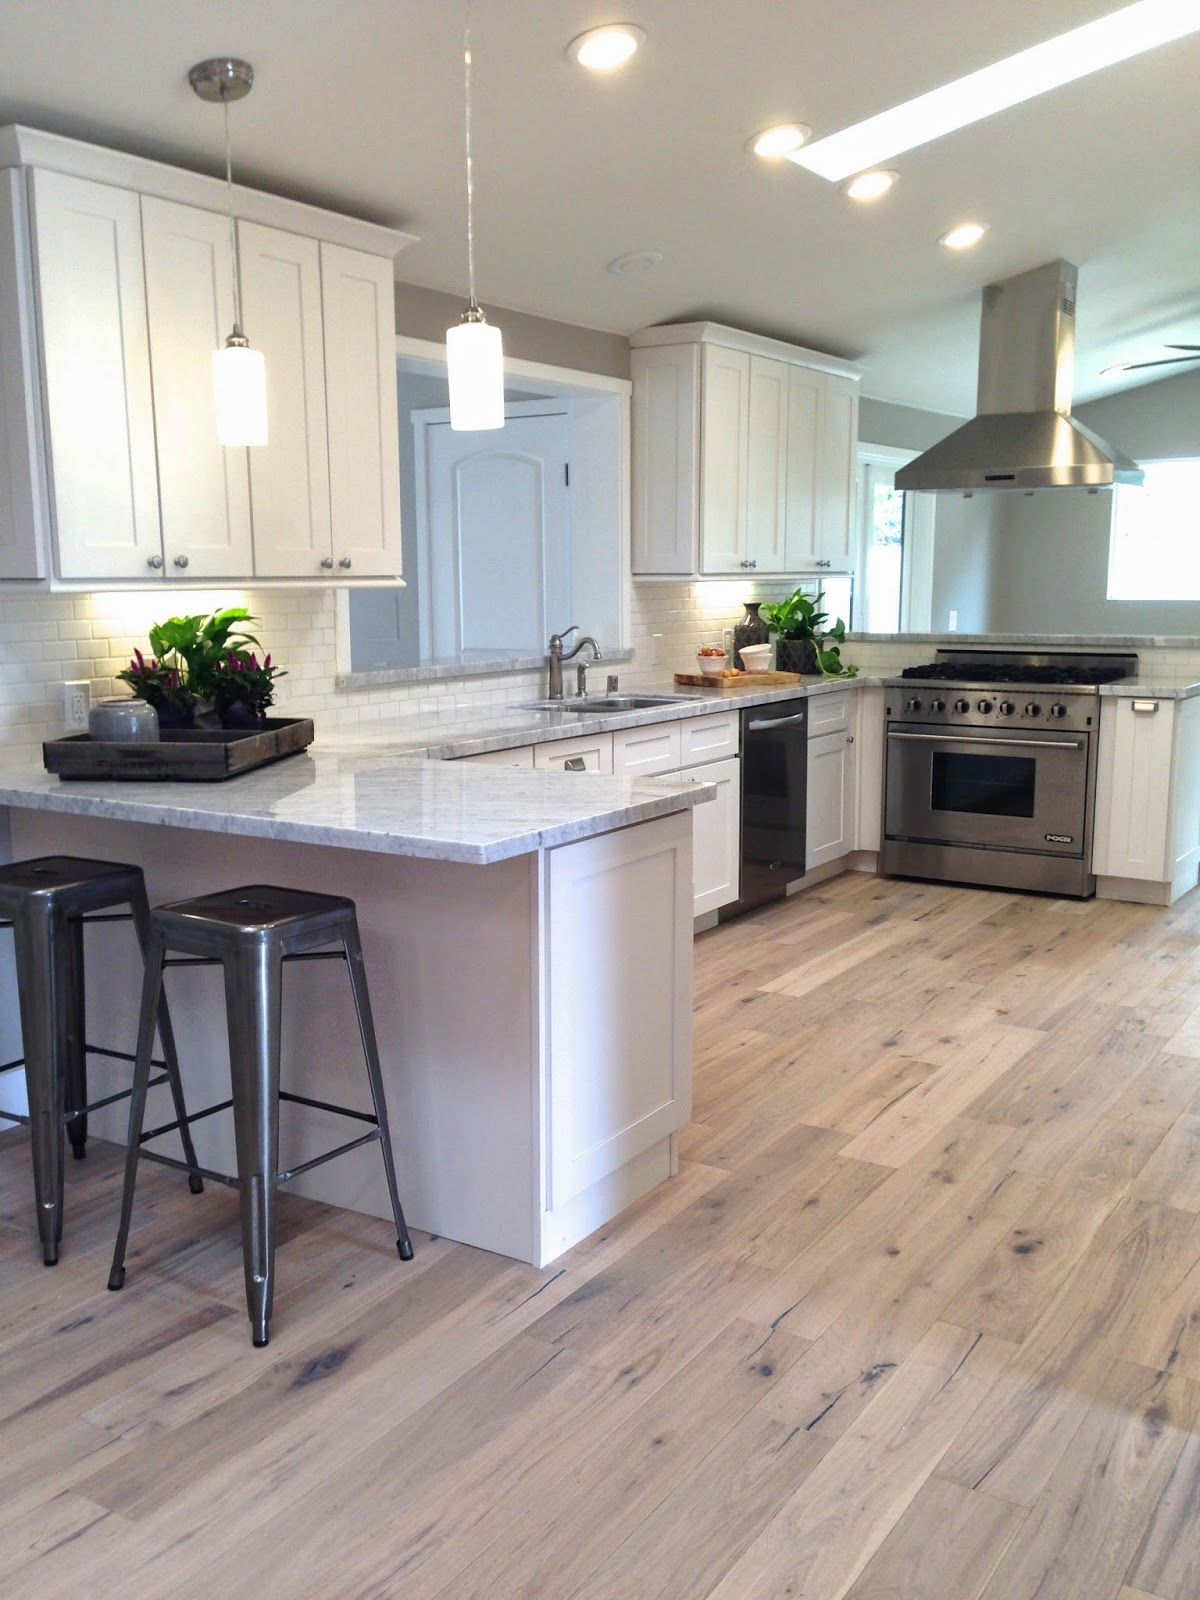 wood floors in kitchen best of 2014 rossmoor house finished in 2019 underfoot 1579